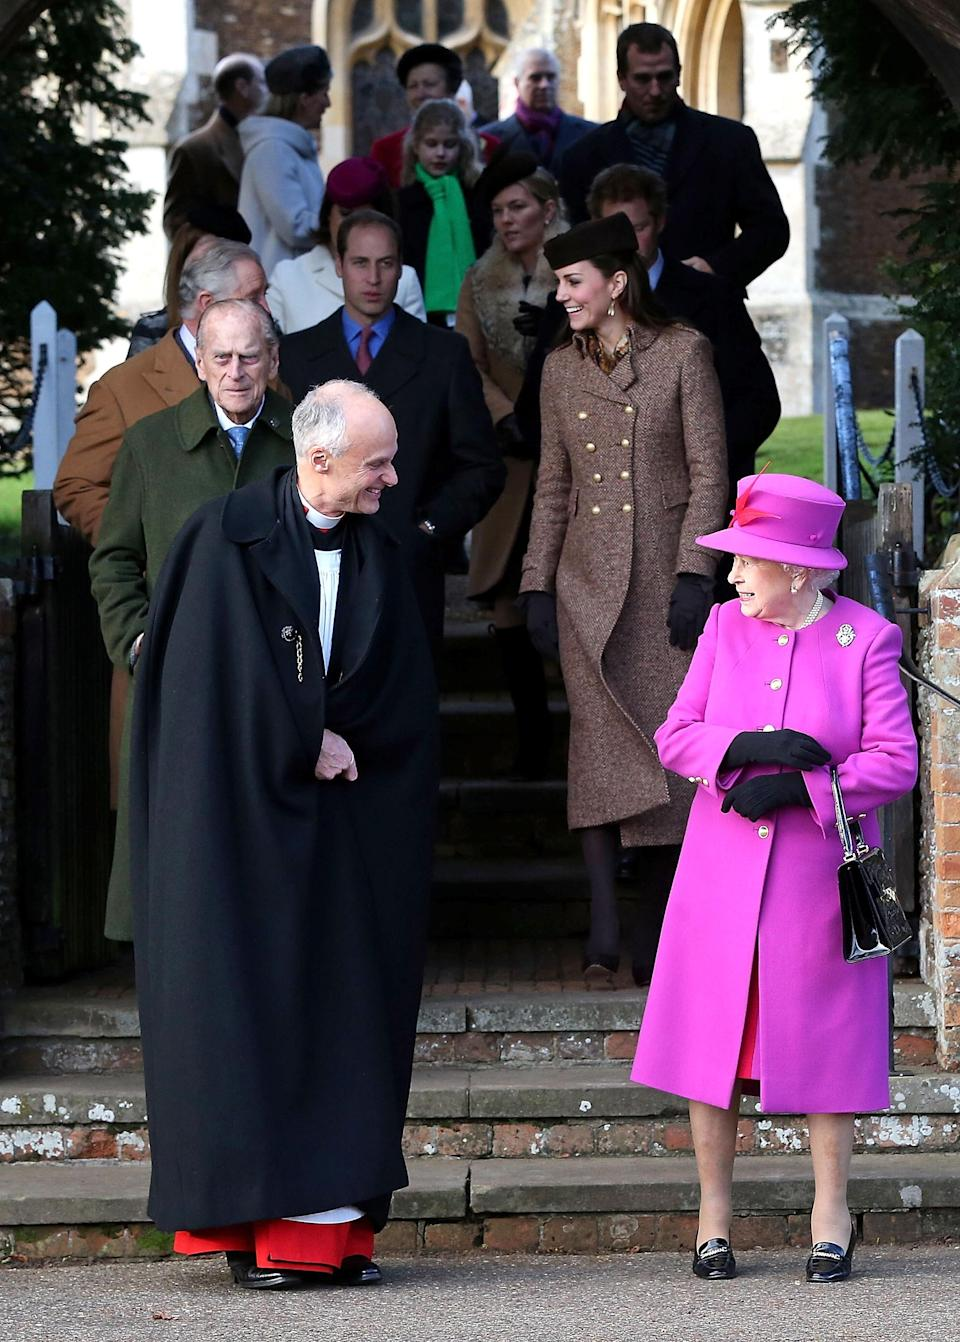 The royal family hold a three-day celebration over the festive period [Photo: Getty]